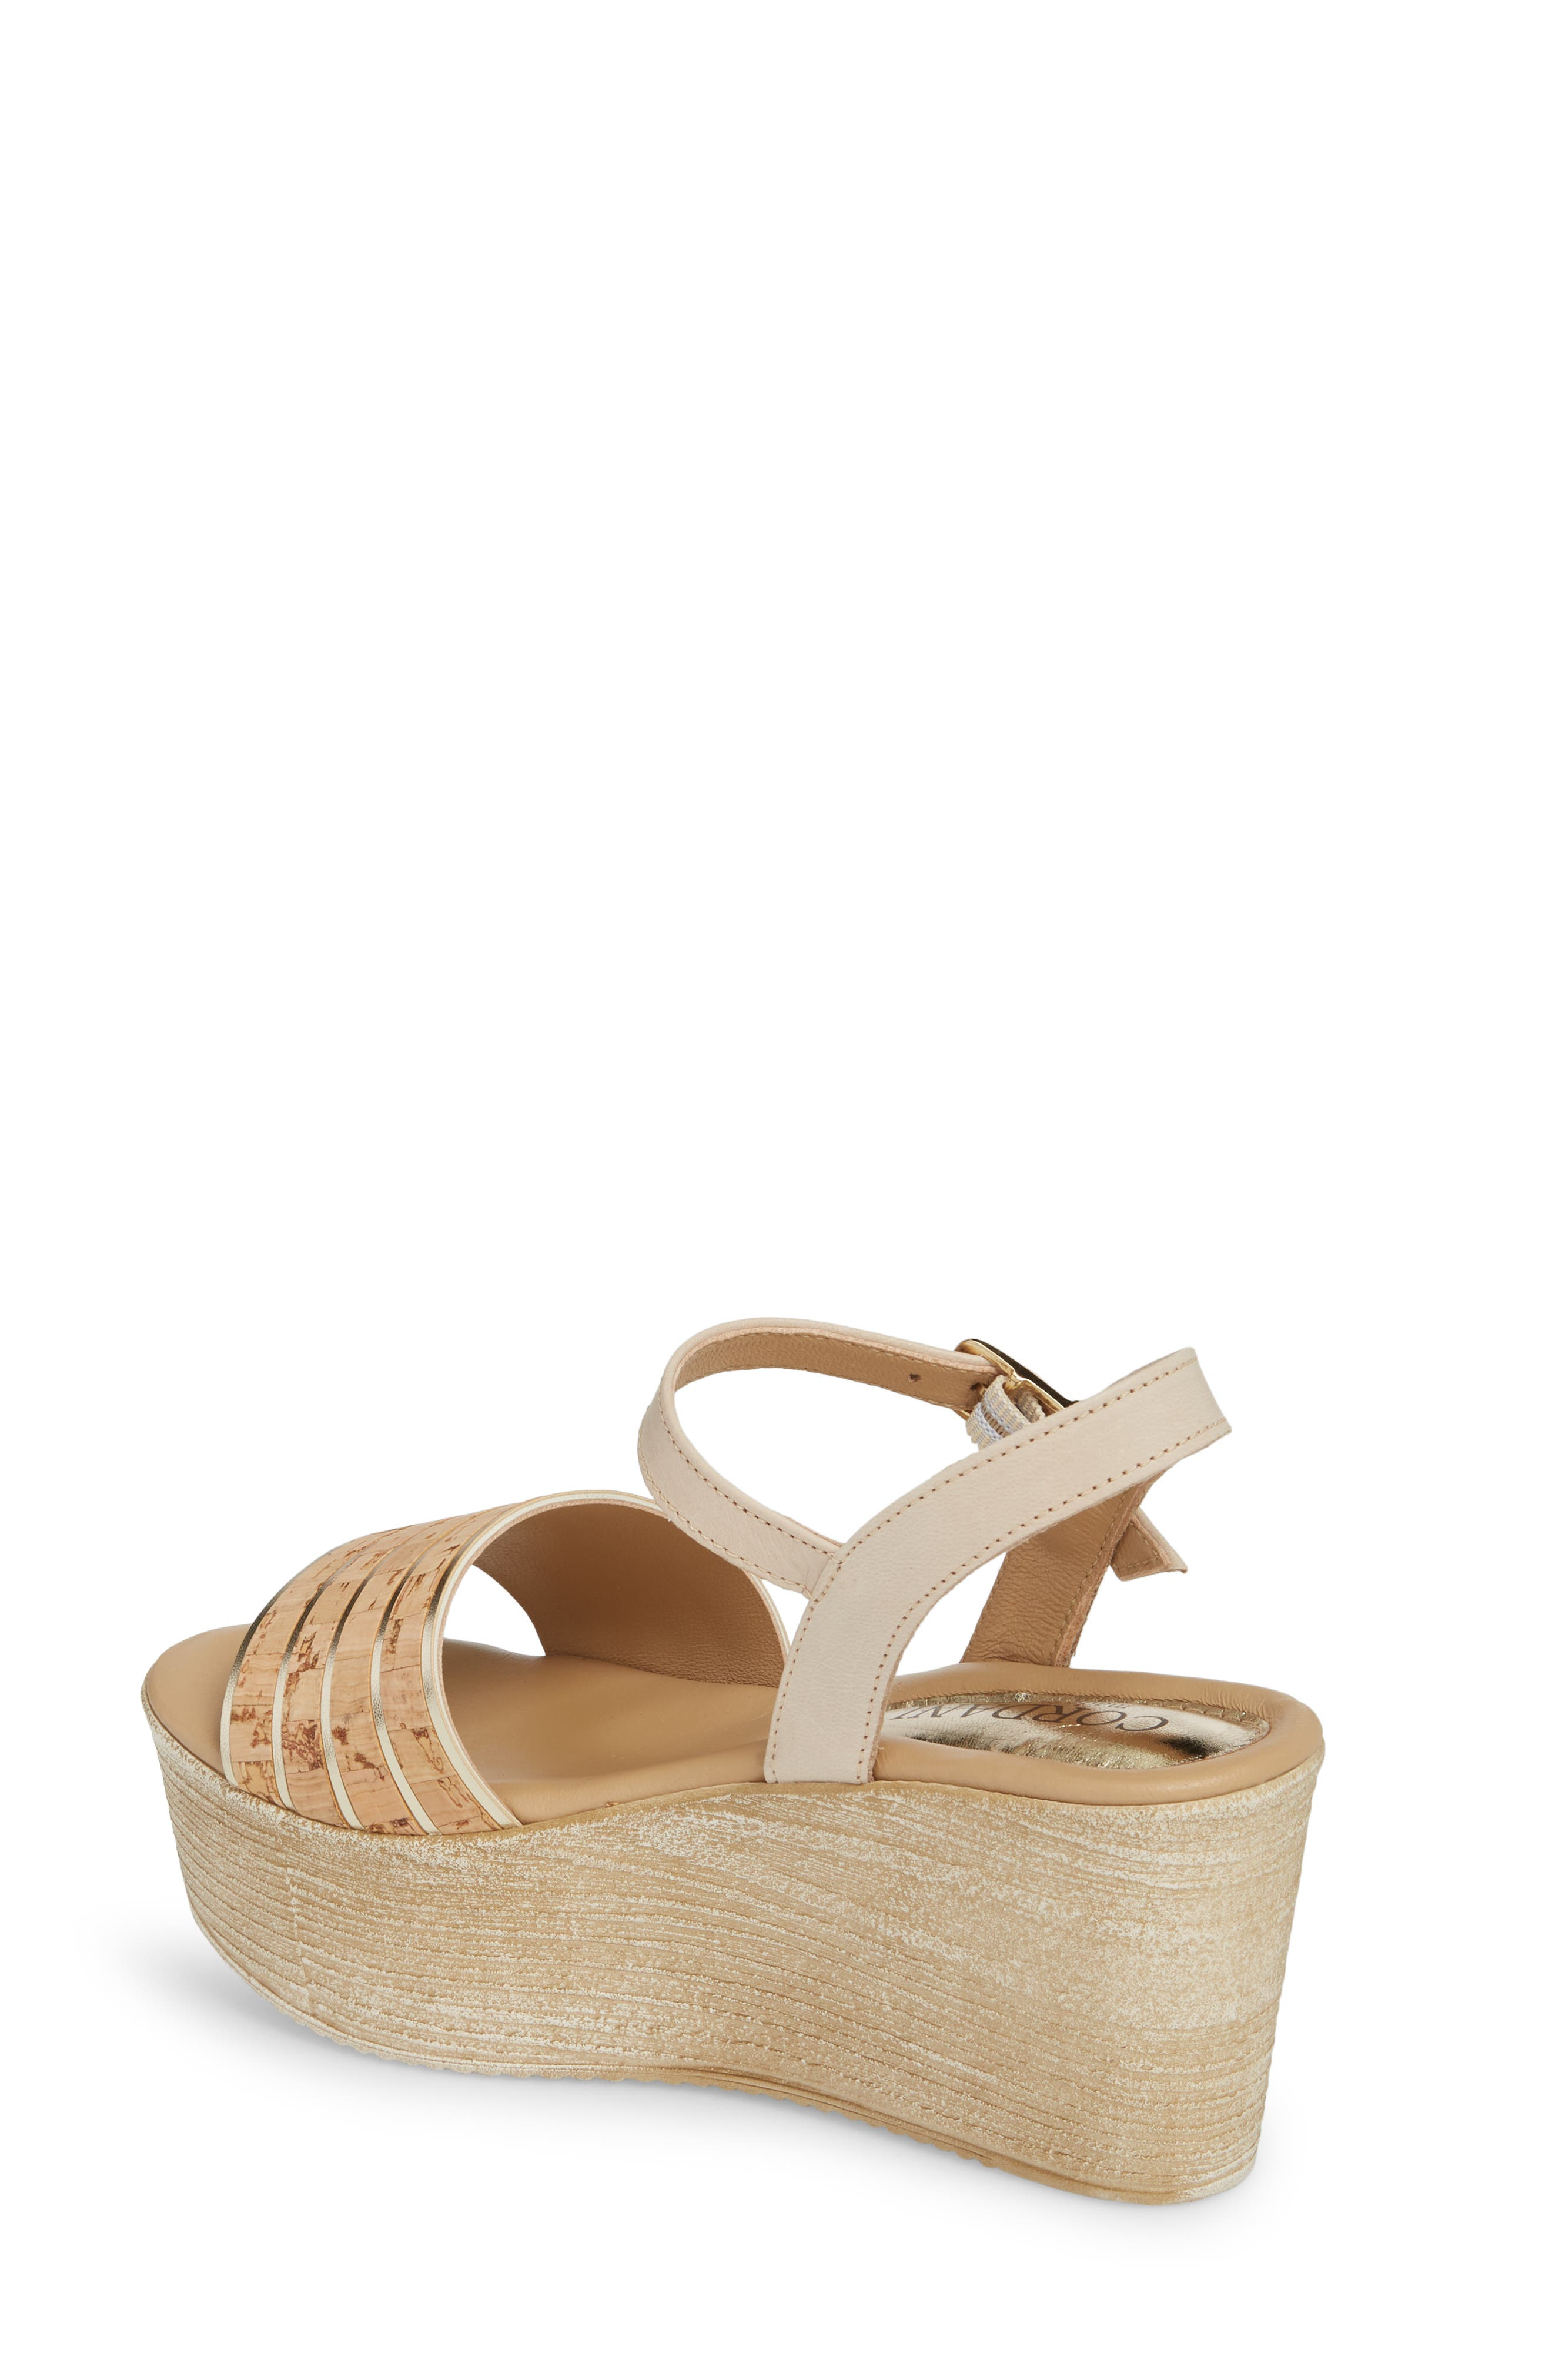 Jaida Platform Wedge Sandal,                             Alternate thumbnail 2, color,                             Cork/ Gold